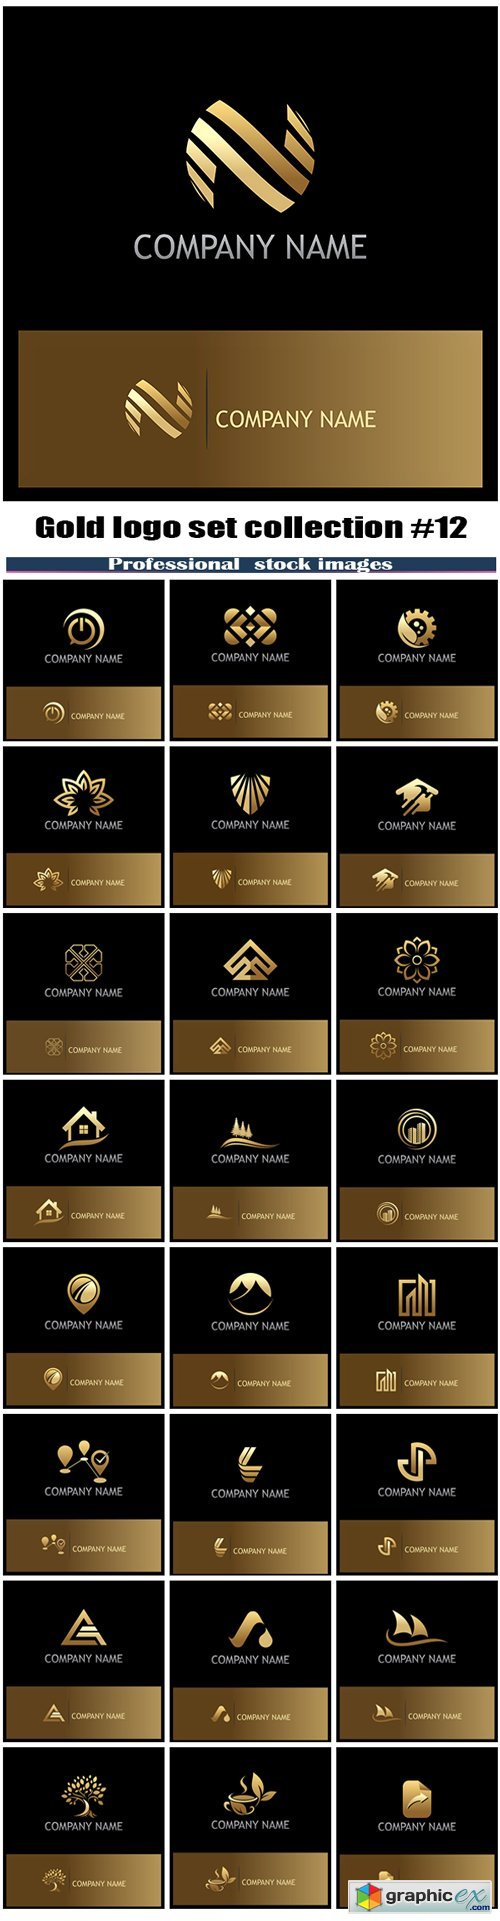 Gold logo set collection #12